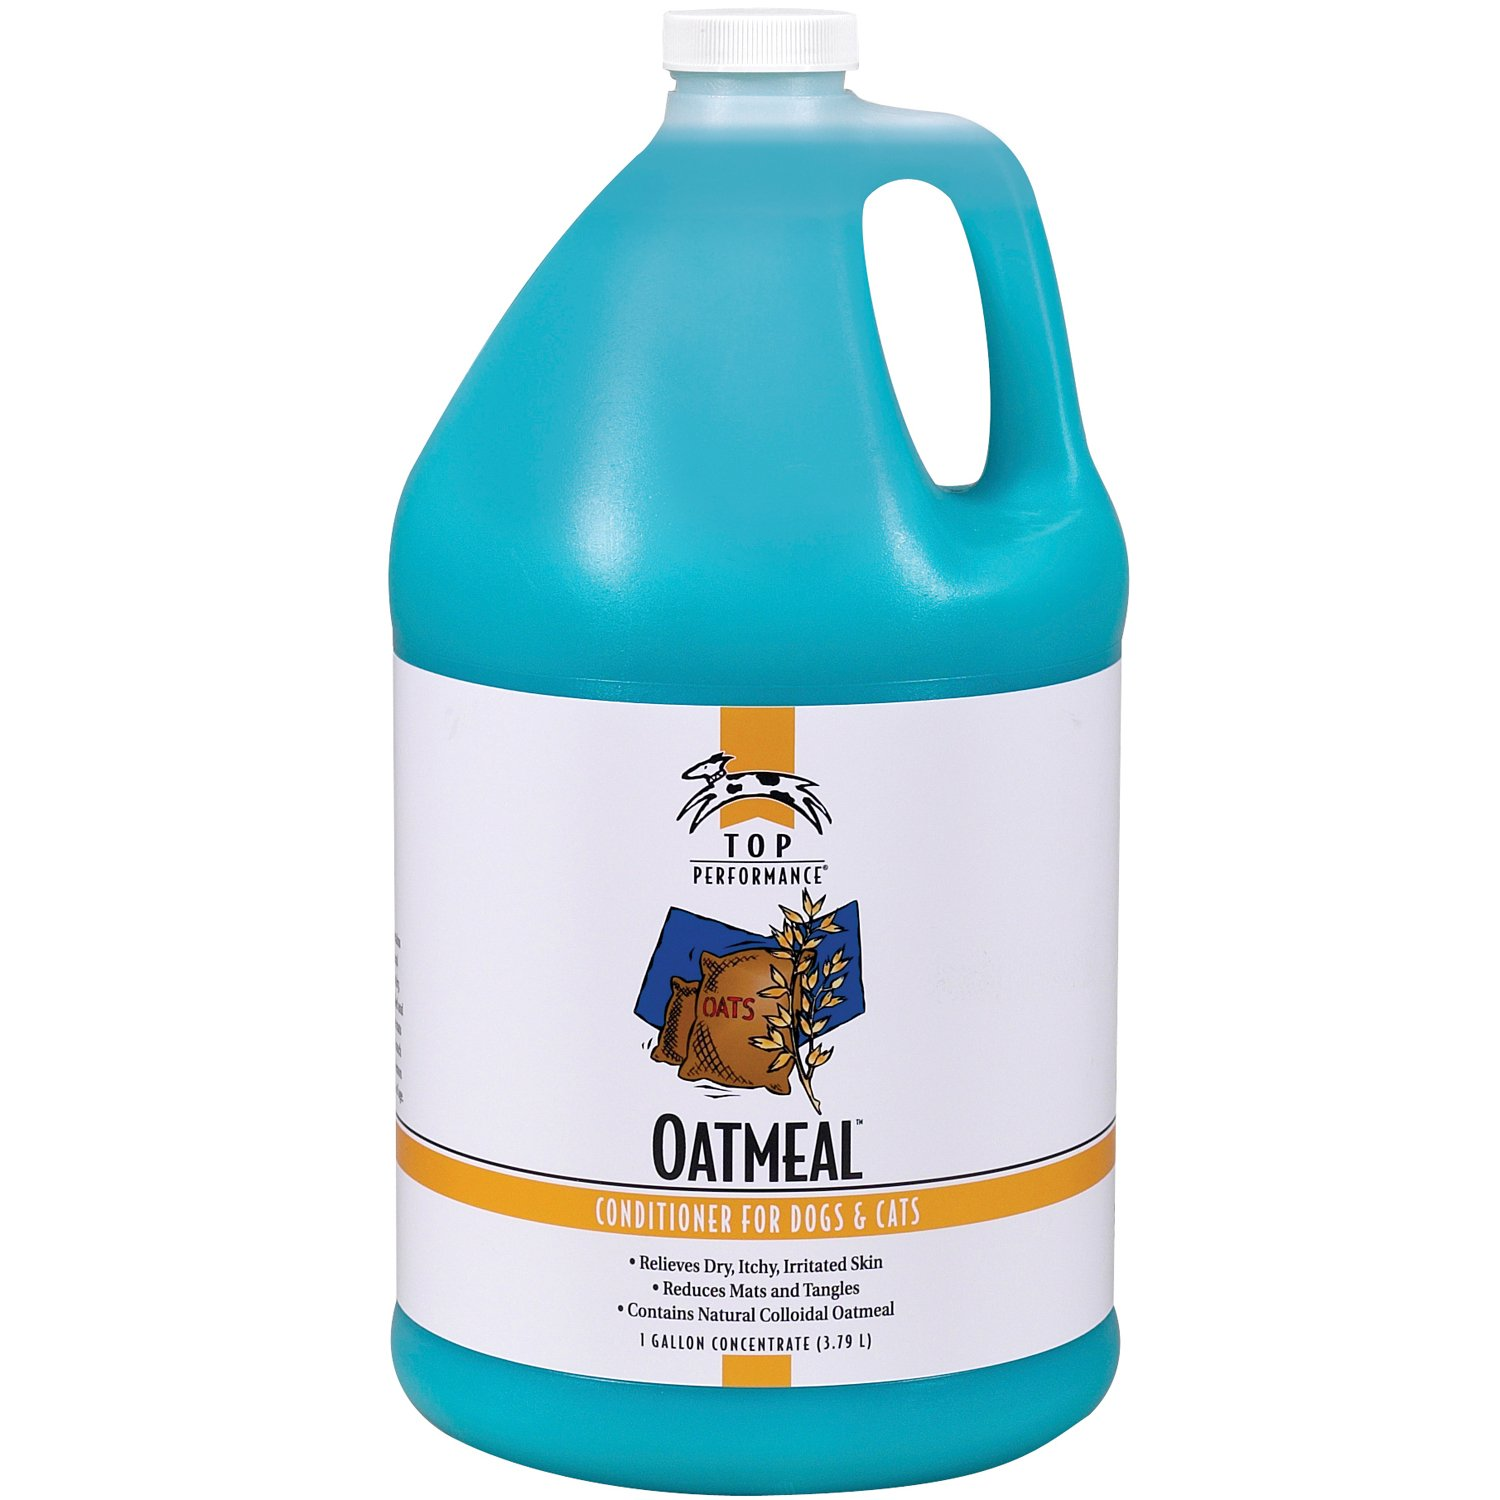 Top Performance Oatmeal Pet Conditioner, 1-Gallon by Top Performance